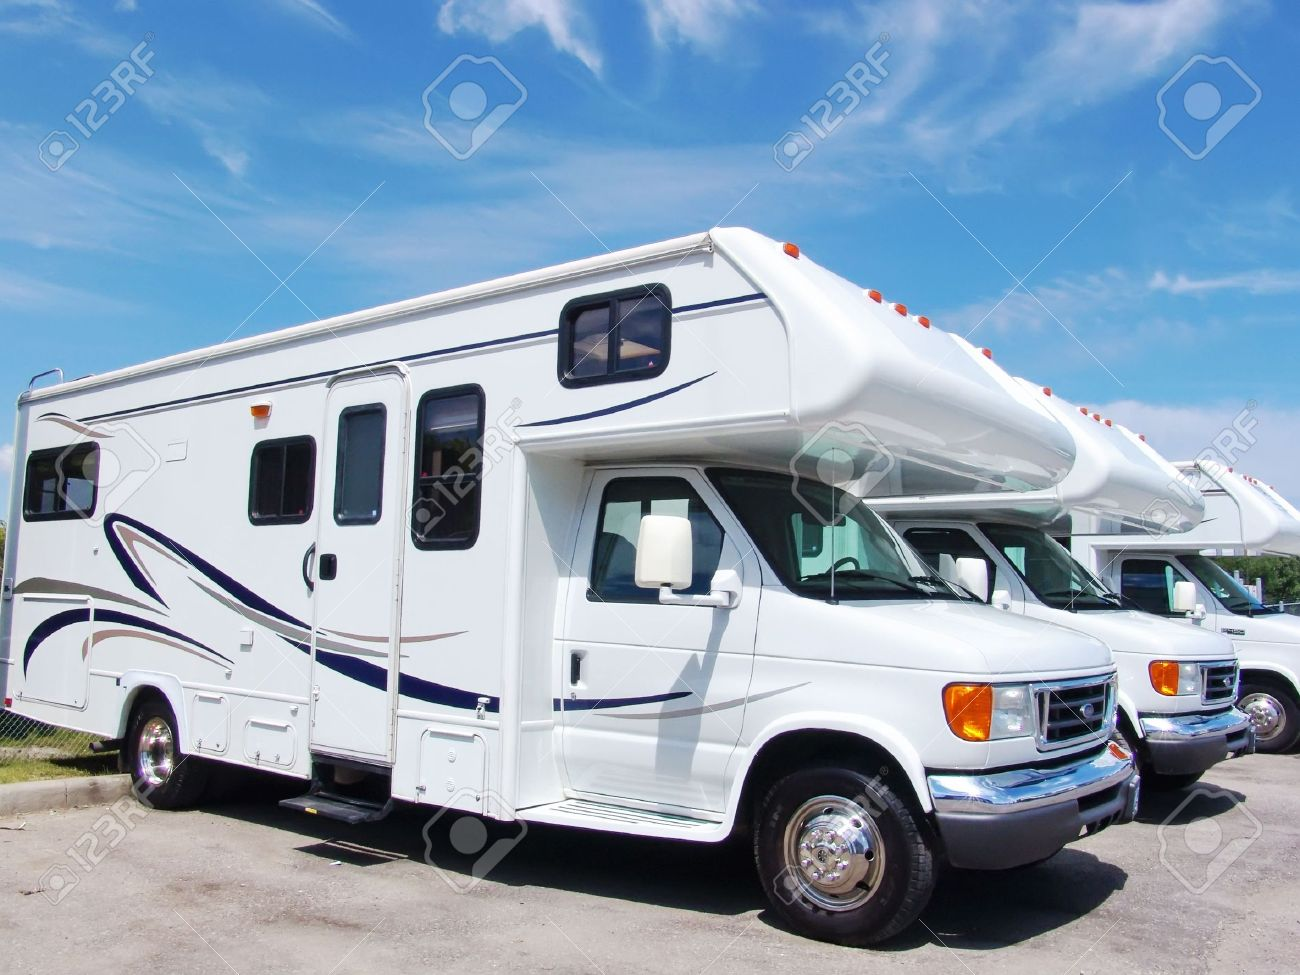 New recreational vehicles for rent - 2899189